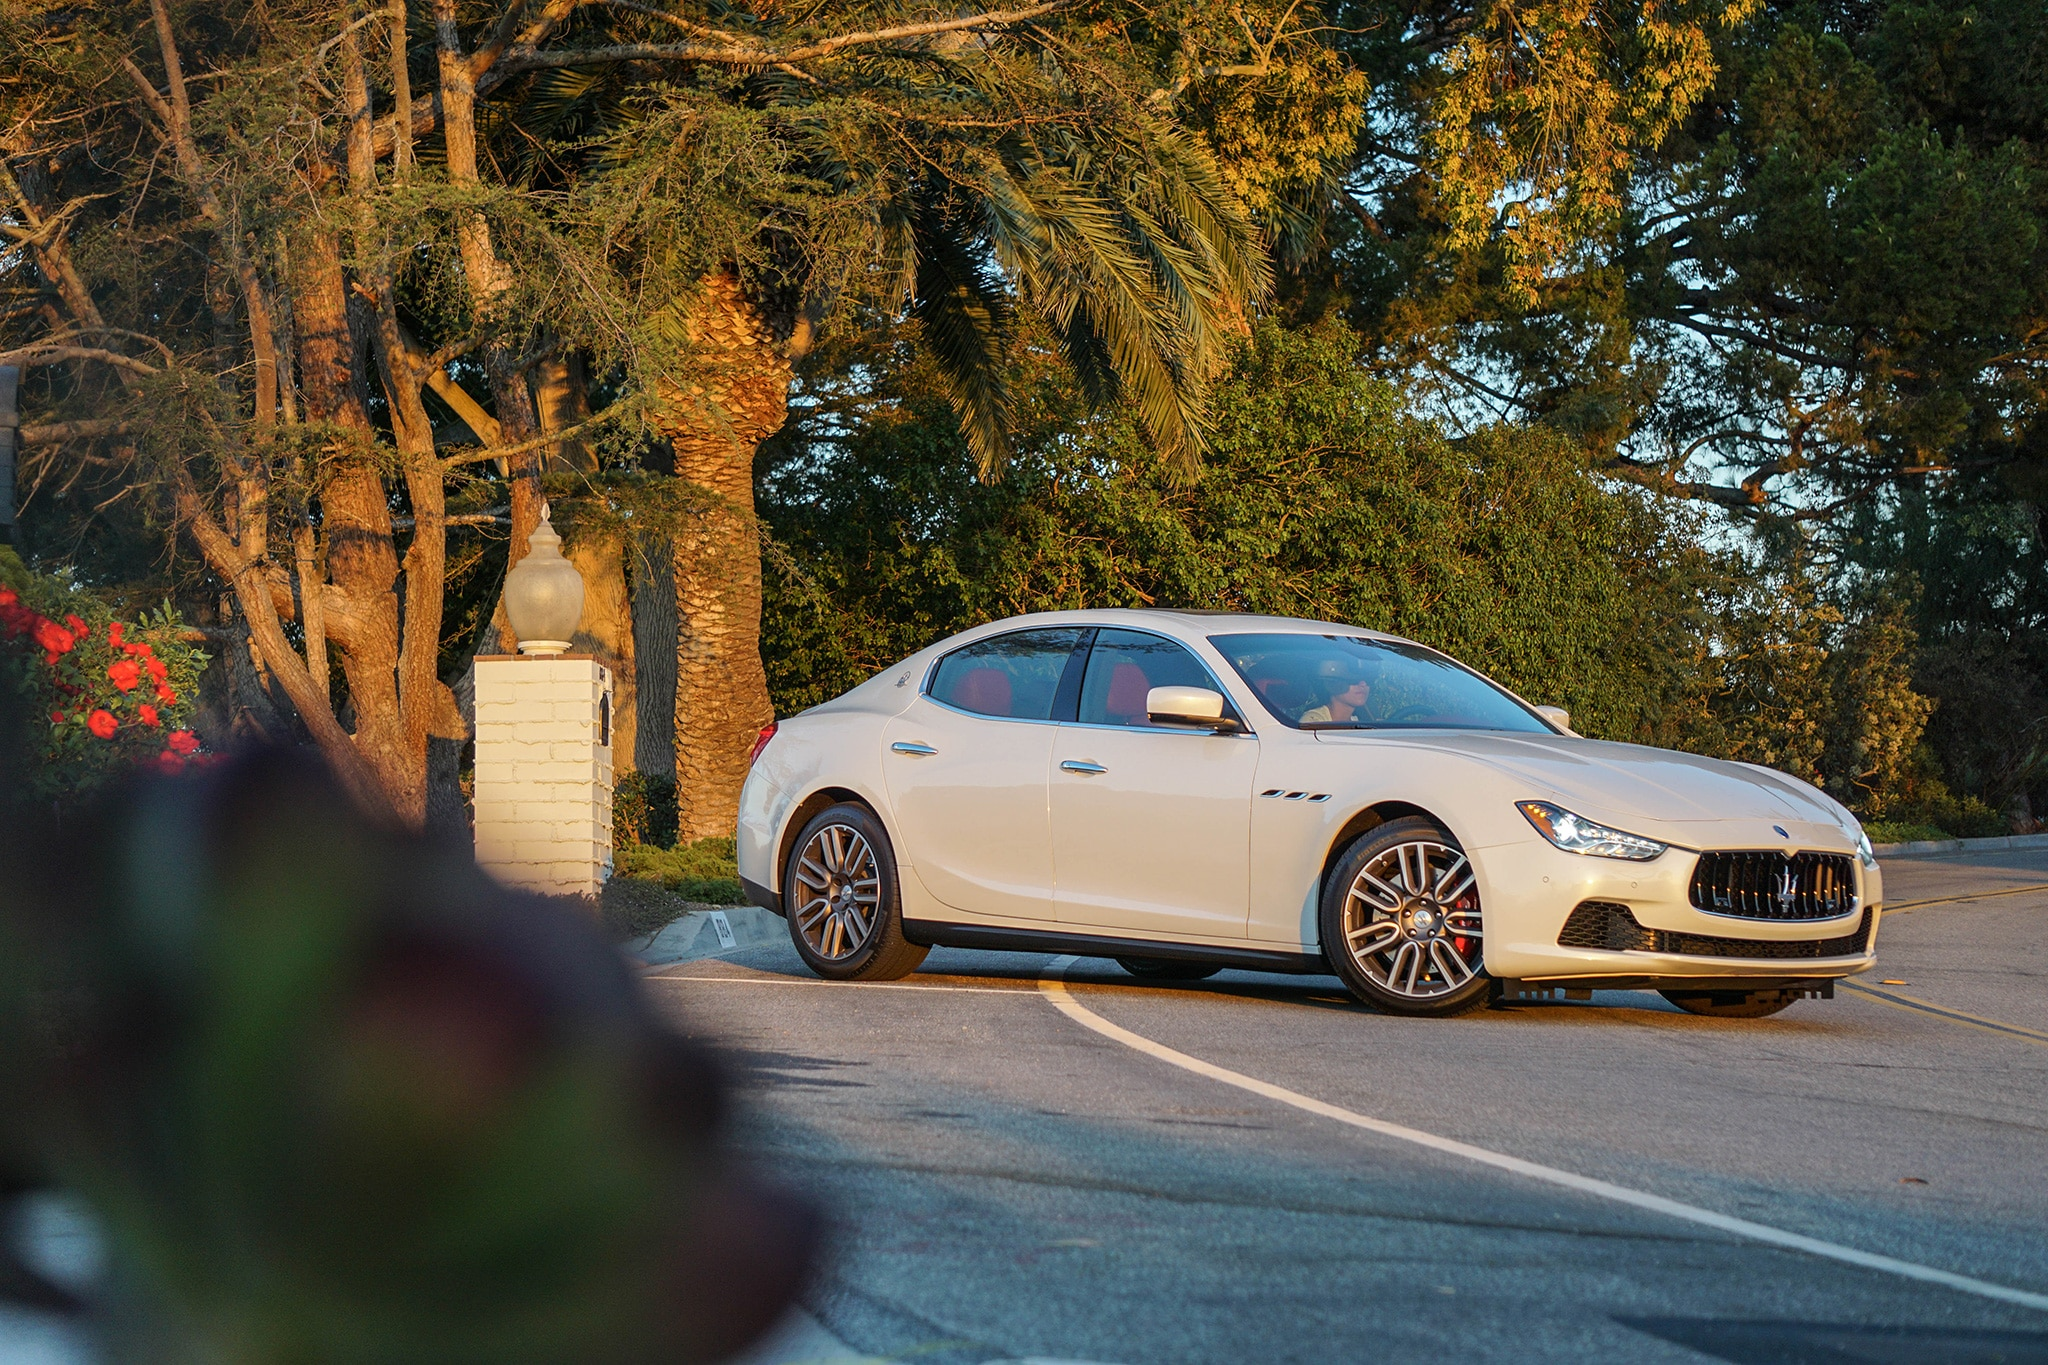 Maserati Ghibli S Q4 0 60 >> 2016 Maserati Ghibli S Q4 One Week Review | Automobile Magazine